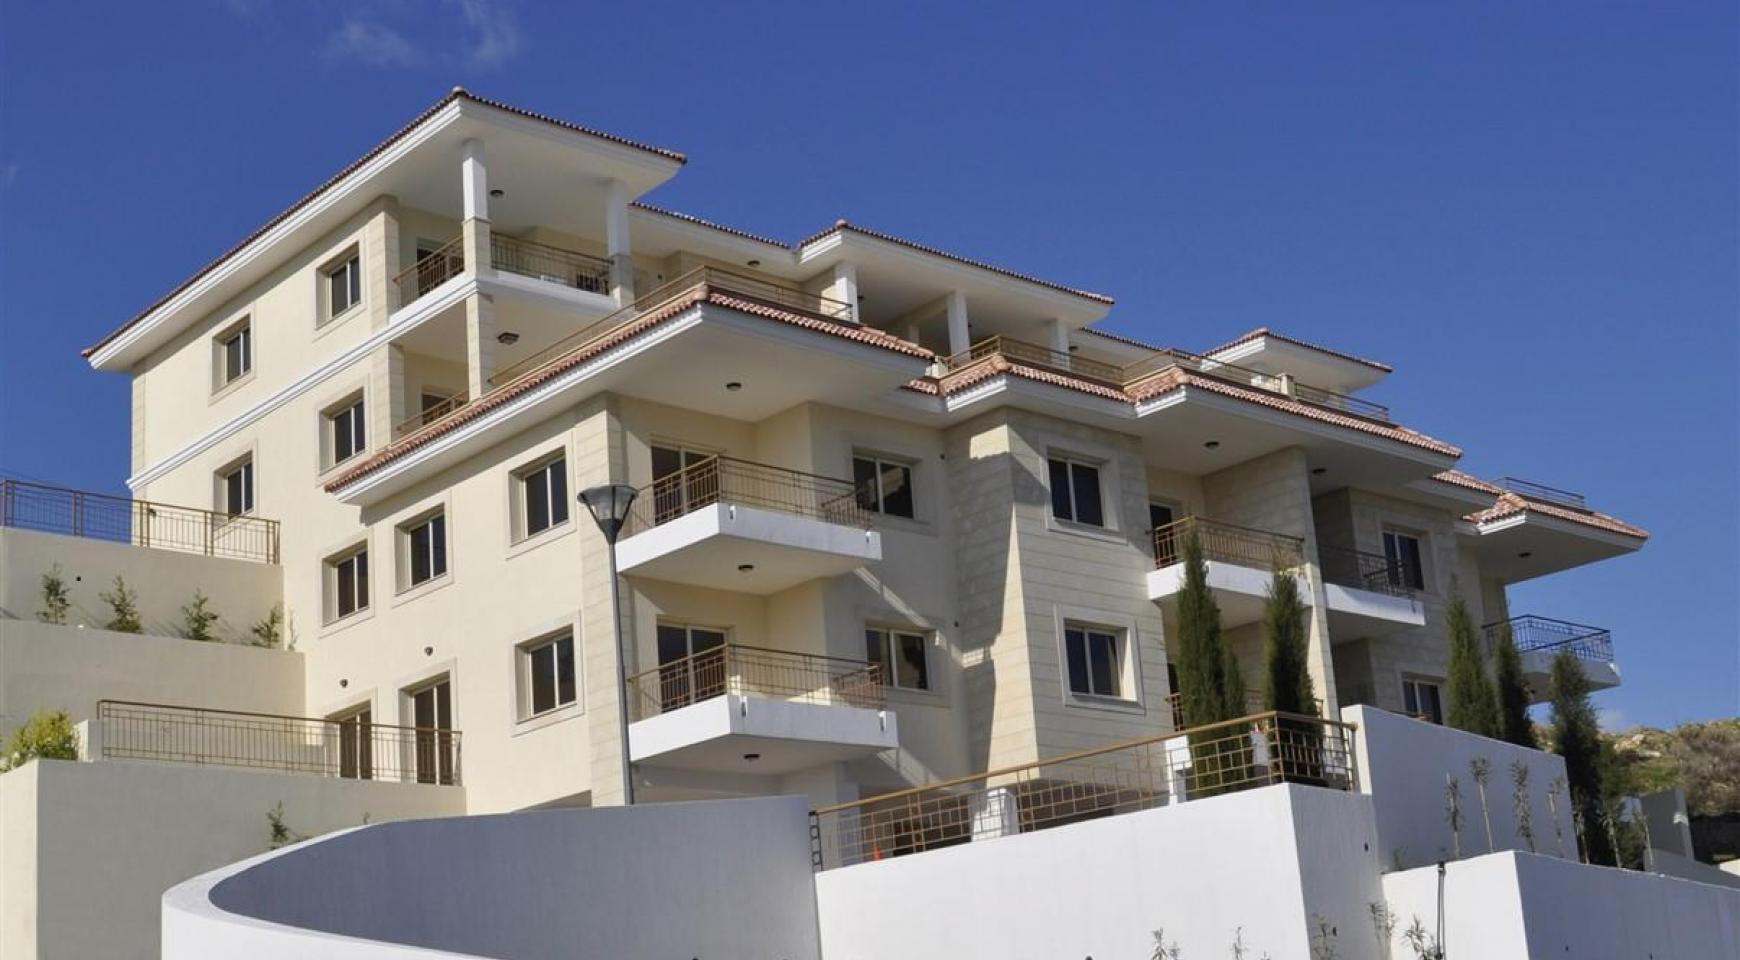 2 Bedroom Apartment with Amazing Views in Agios Athanasios - 4